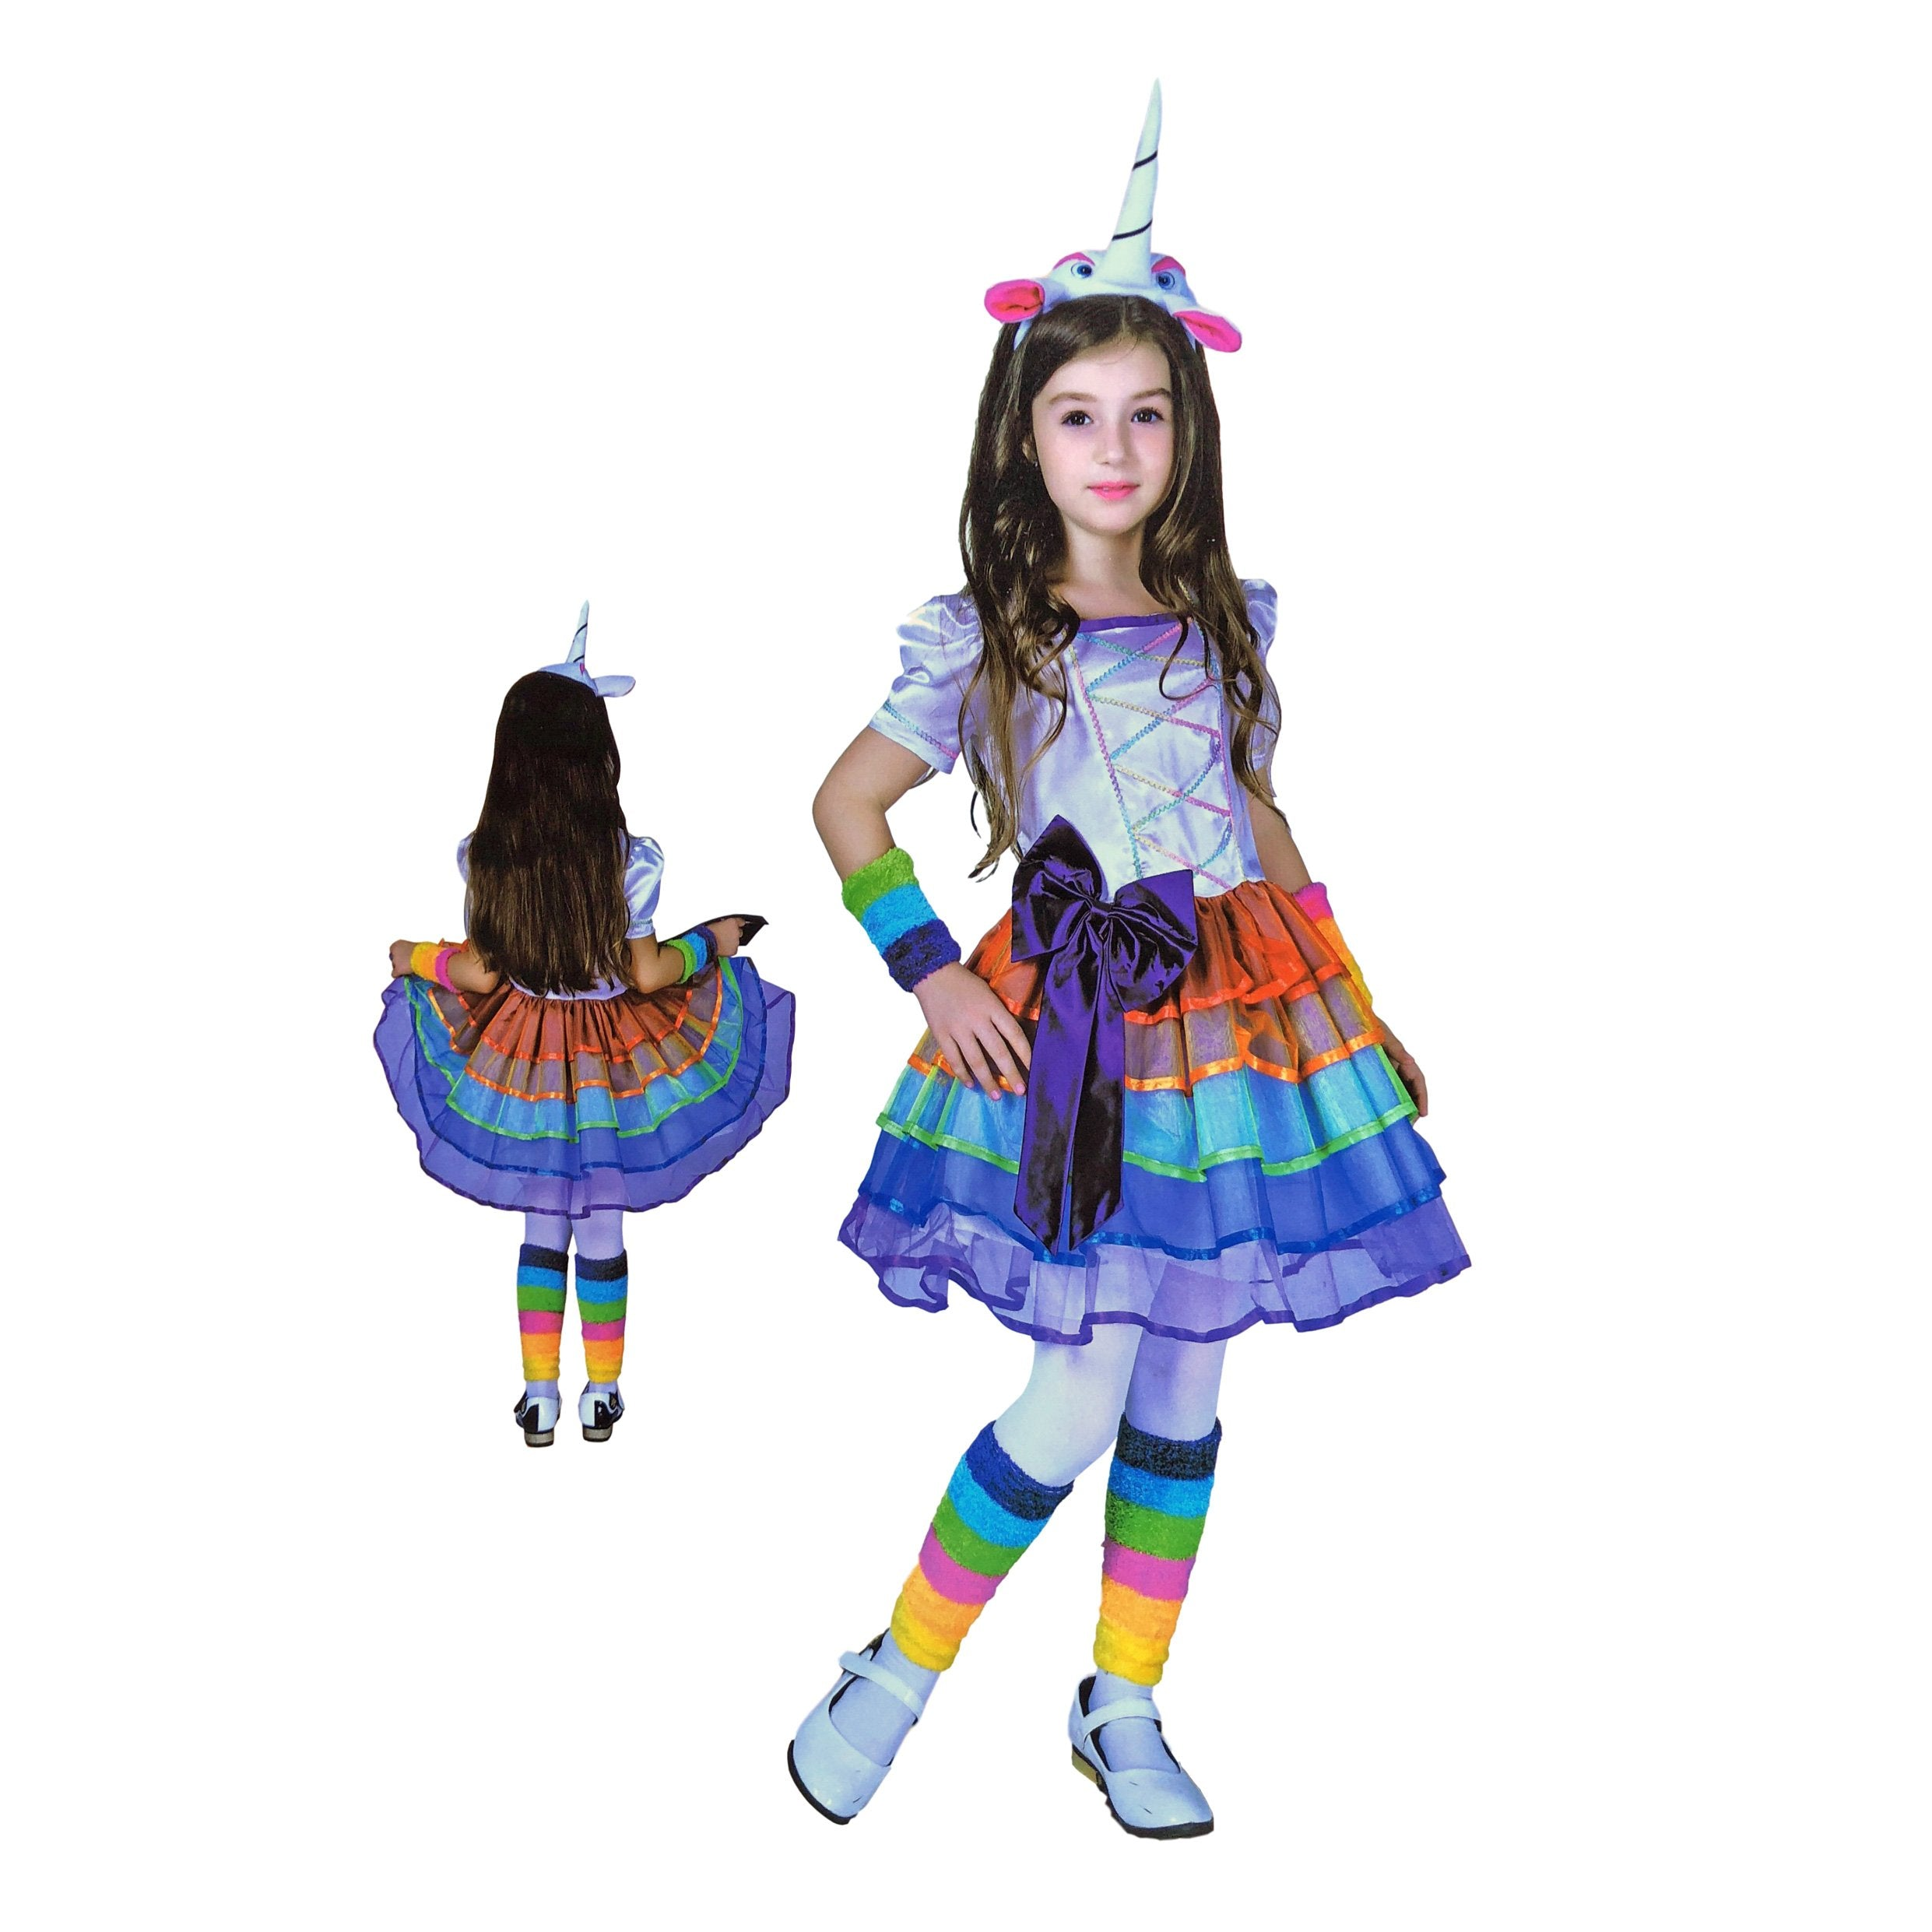 87acc1d49 Shop for Unicorn Dress Up Theme at Simply Party Supplies: accessories,  adult, blue, bracelet, child one size, childrens, costume, fancy dress,  girls, gold